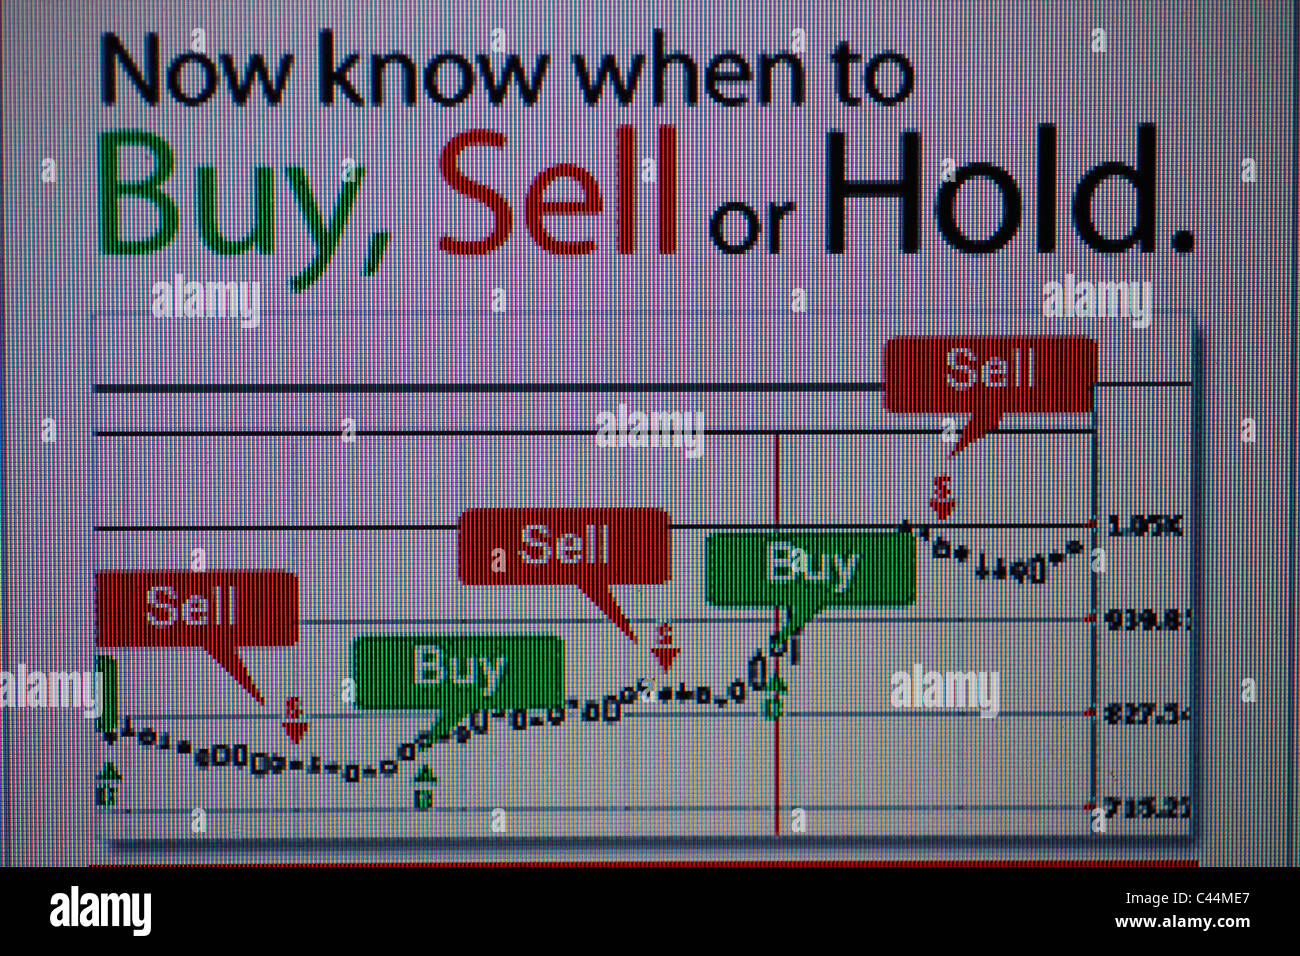 How do you buy and sell stock options